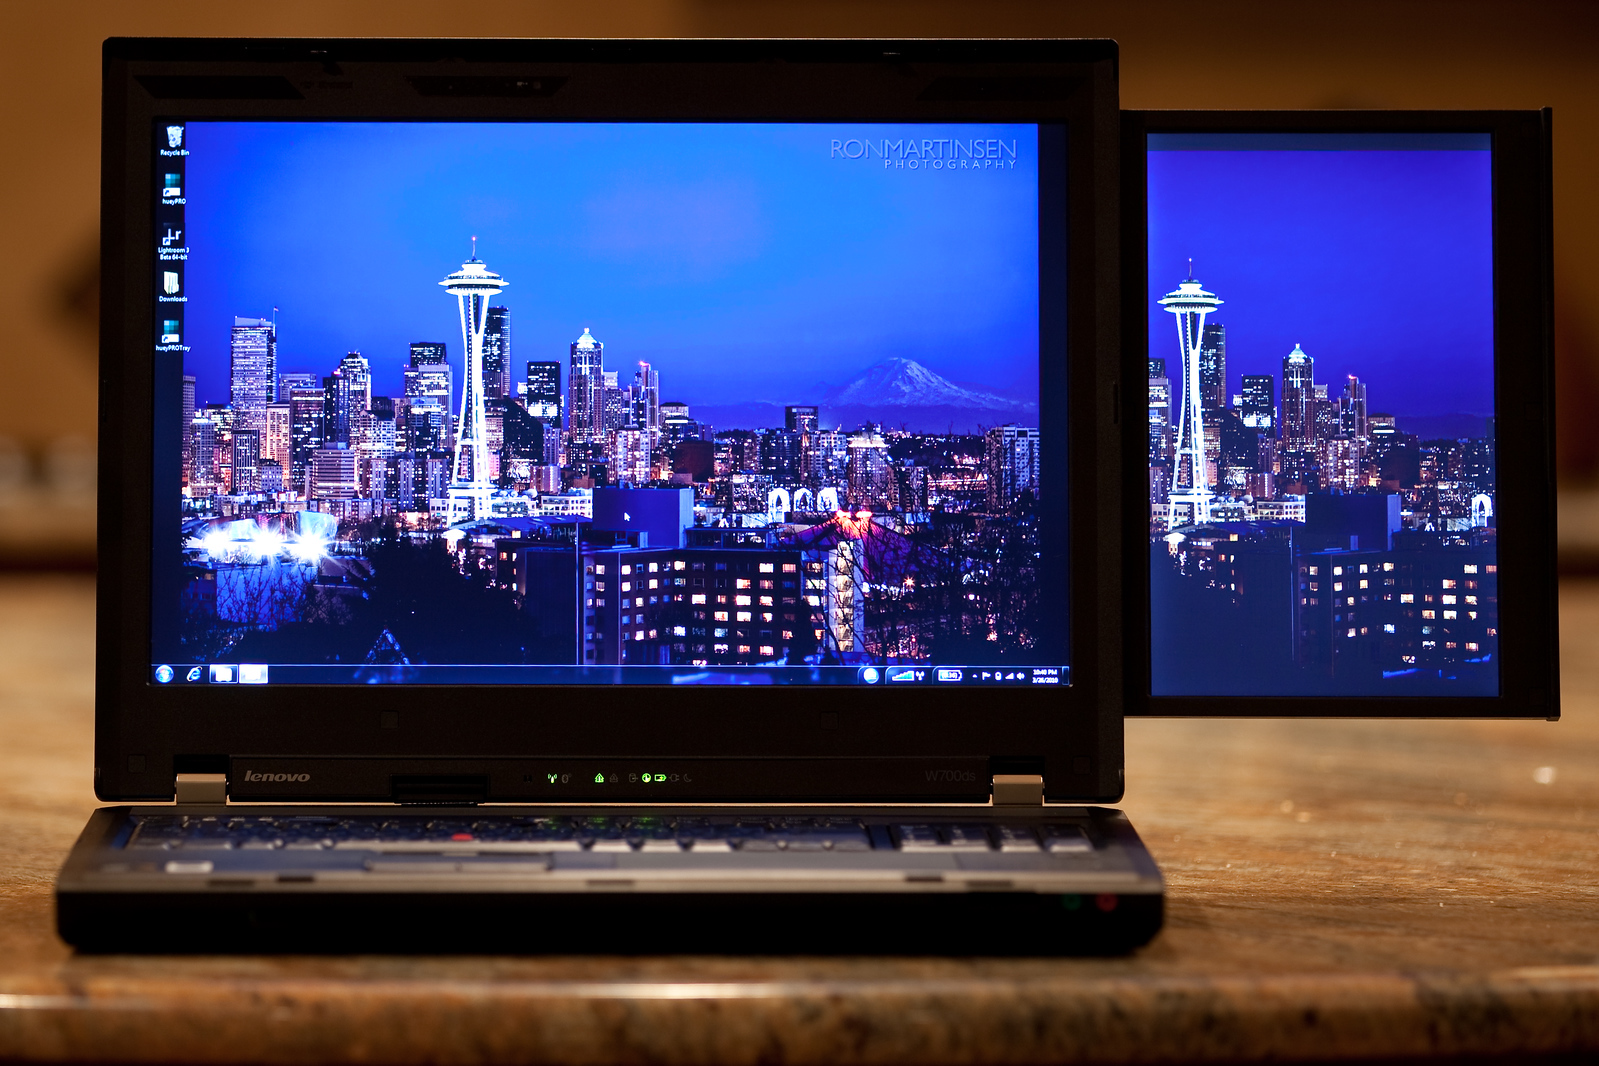 Ron Martinsen's Photography Blog: HANDS-ON: Lenovo W700ds